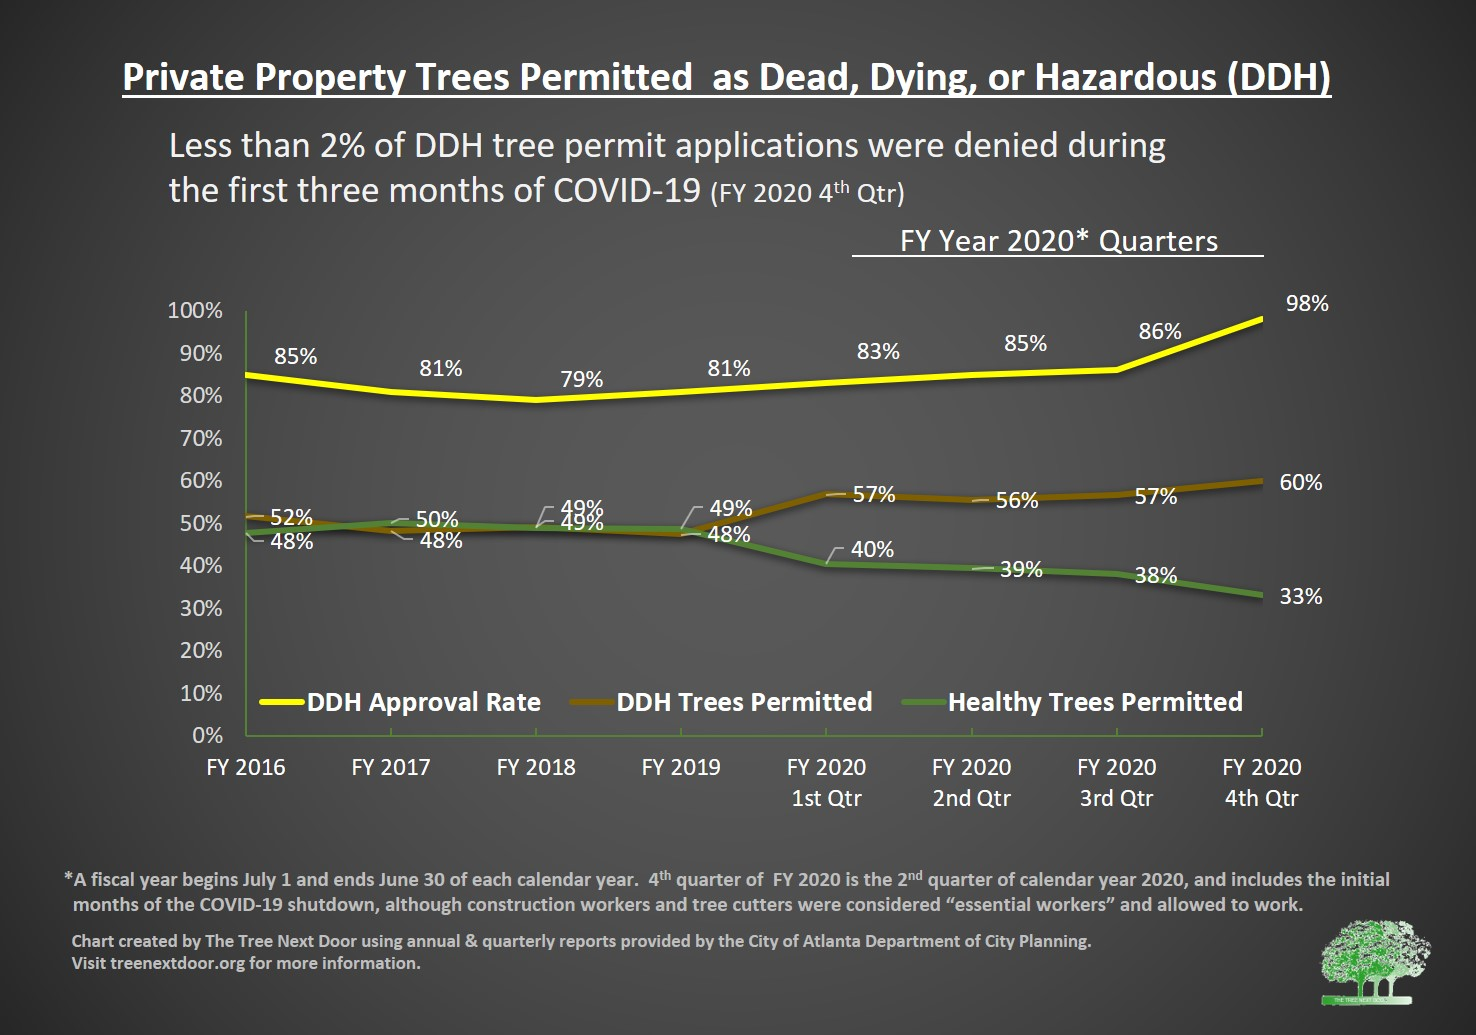 trees permitted as ddh